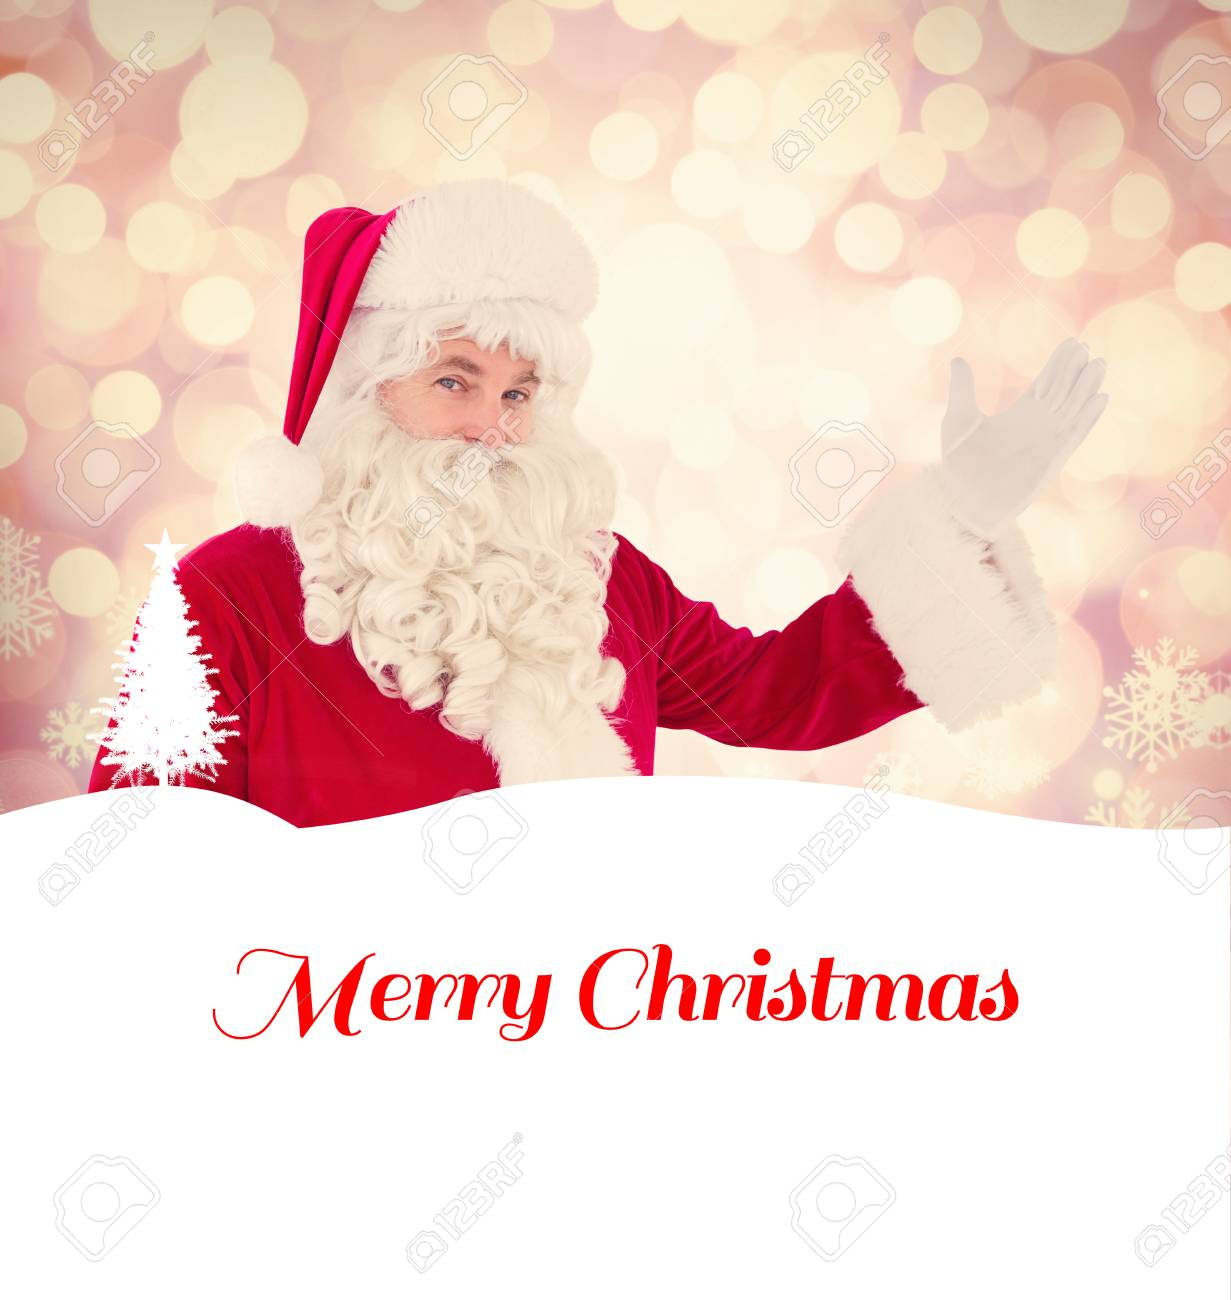 Christmas Background Images Portrait.Portrait Of Santa Claus Showing Against Glowing Christmas Background